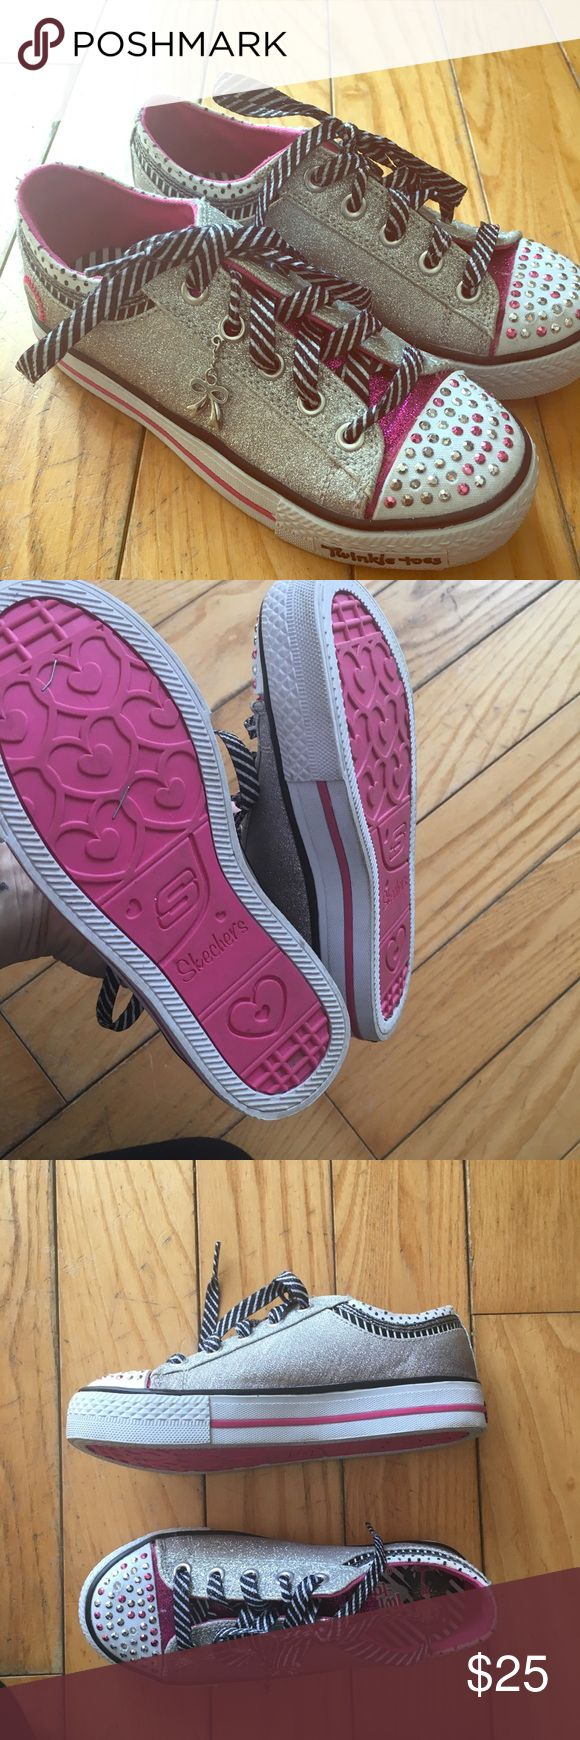 Girls twinkle toes Skechers Excellent condition.  You can have them twinkle or turn the lights off. Worn once Skechers Shoes Sneakers